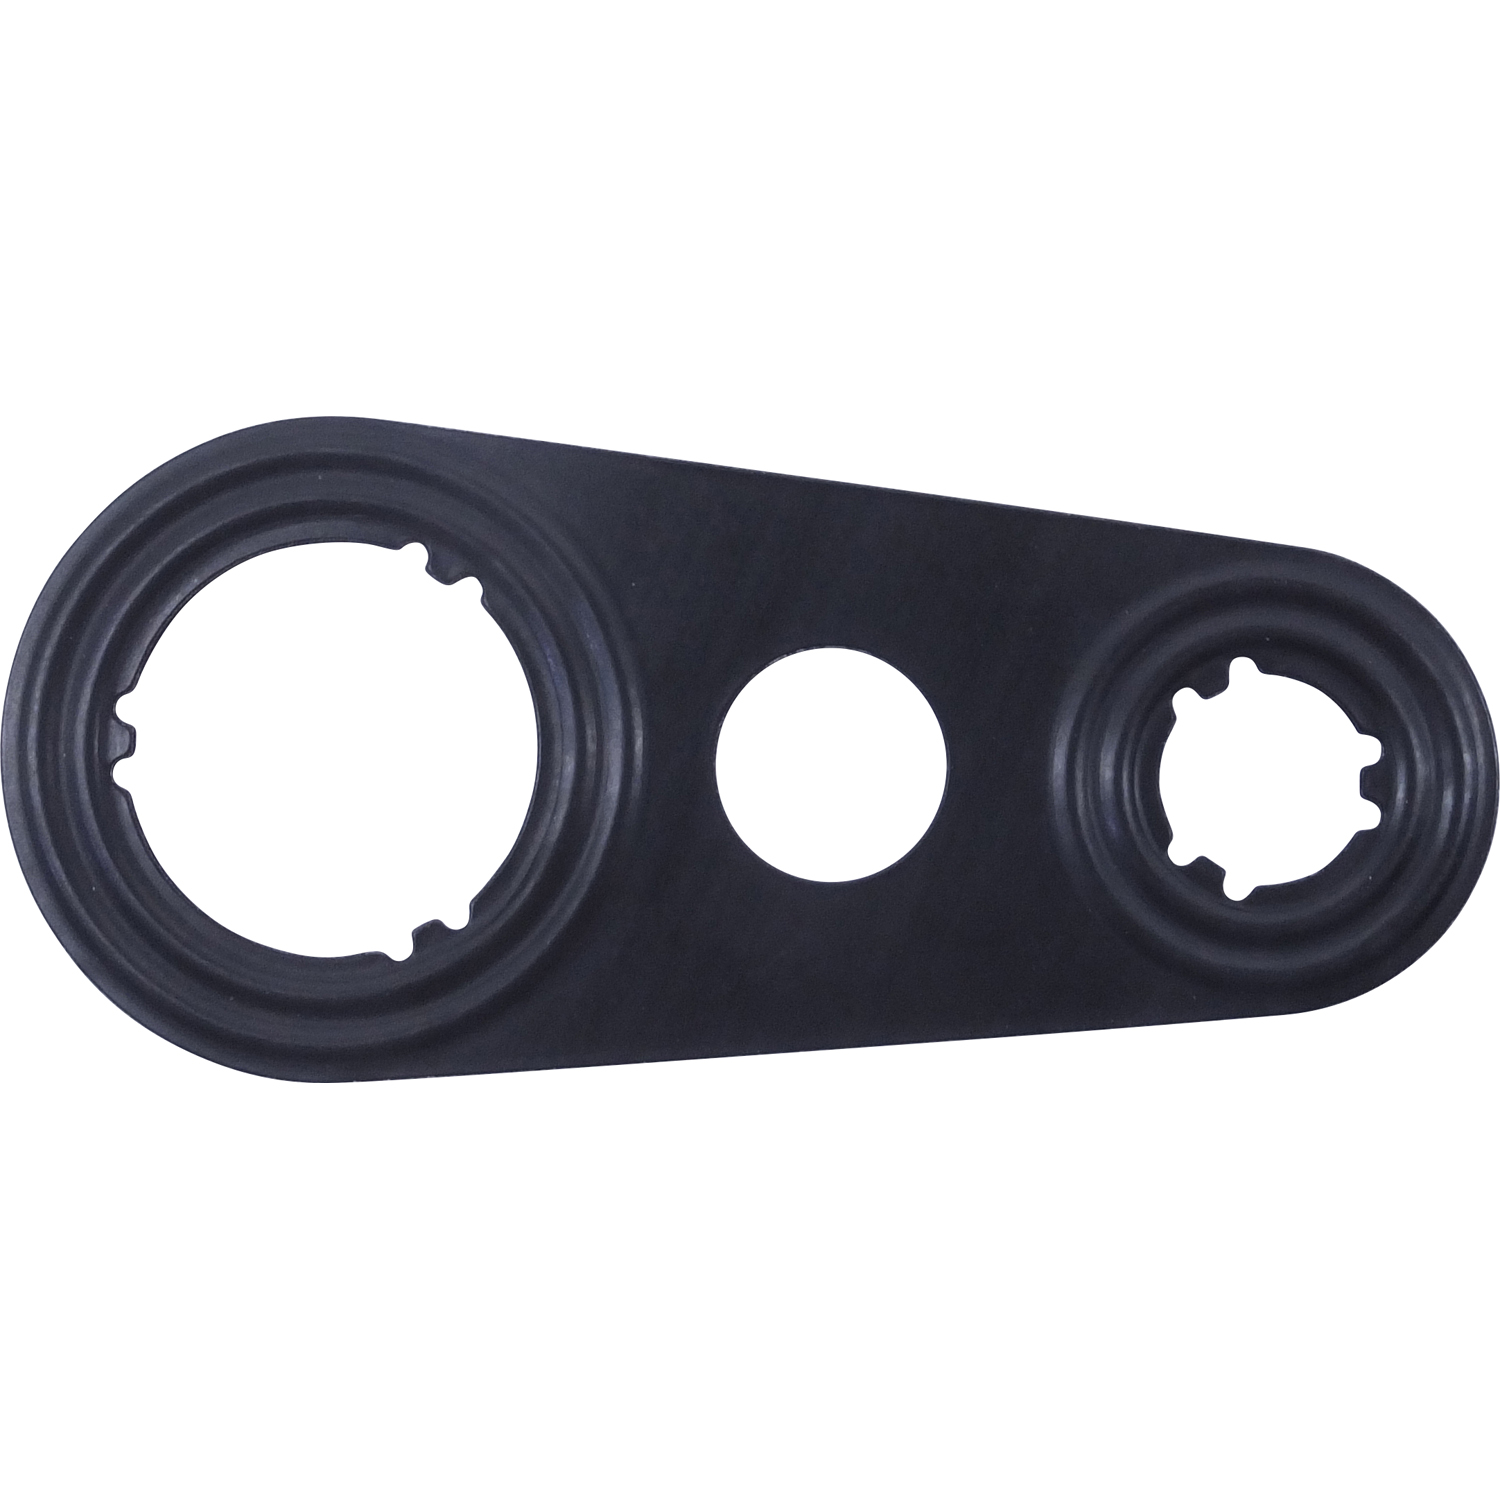 Gasket for Hose End of Chrysler Expasion Block  w/o Foamet  PKG 10